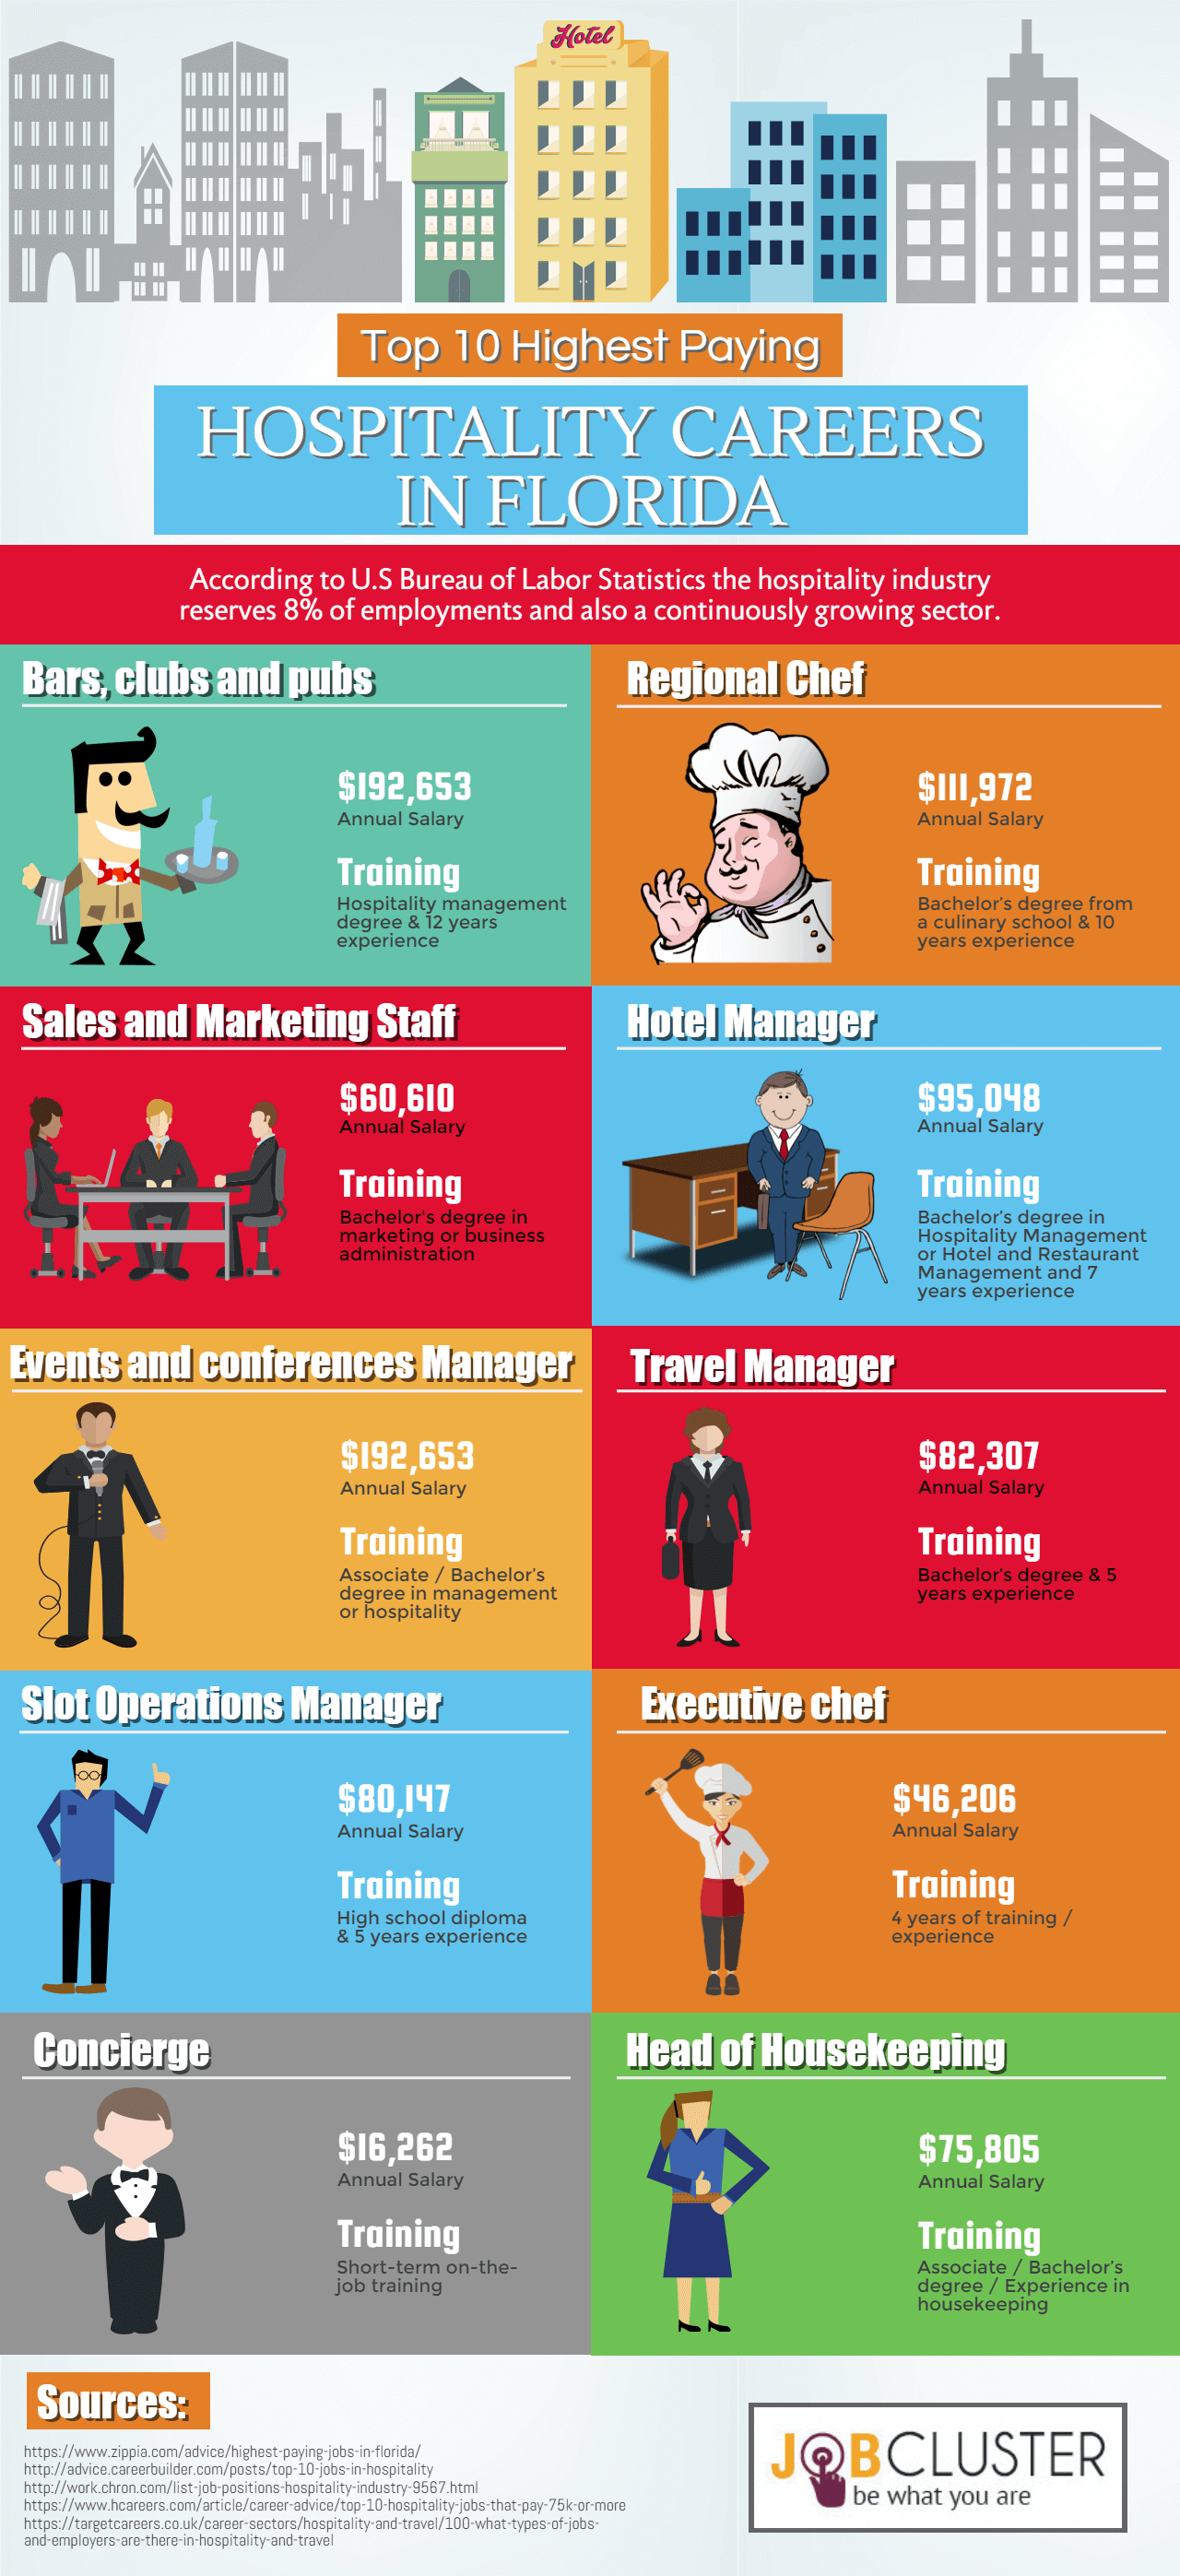 Top 10 Highest Paying Hospitality Jobs in Florida- Infographic